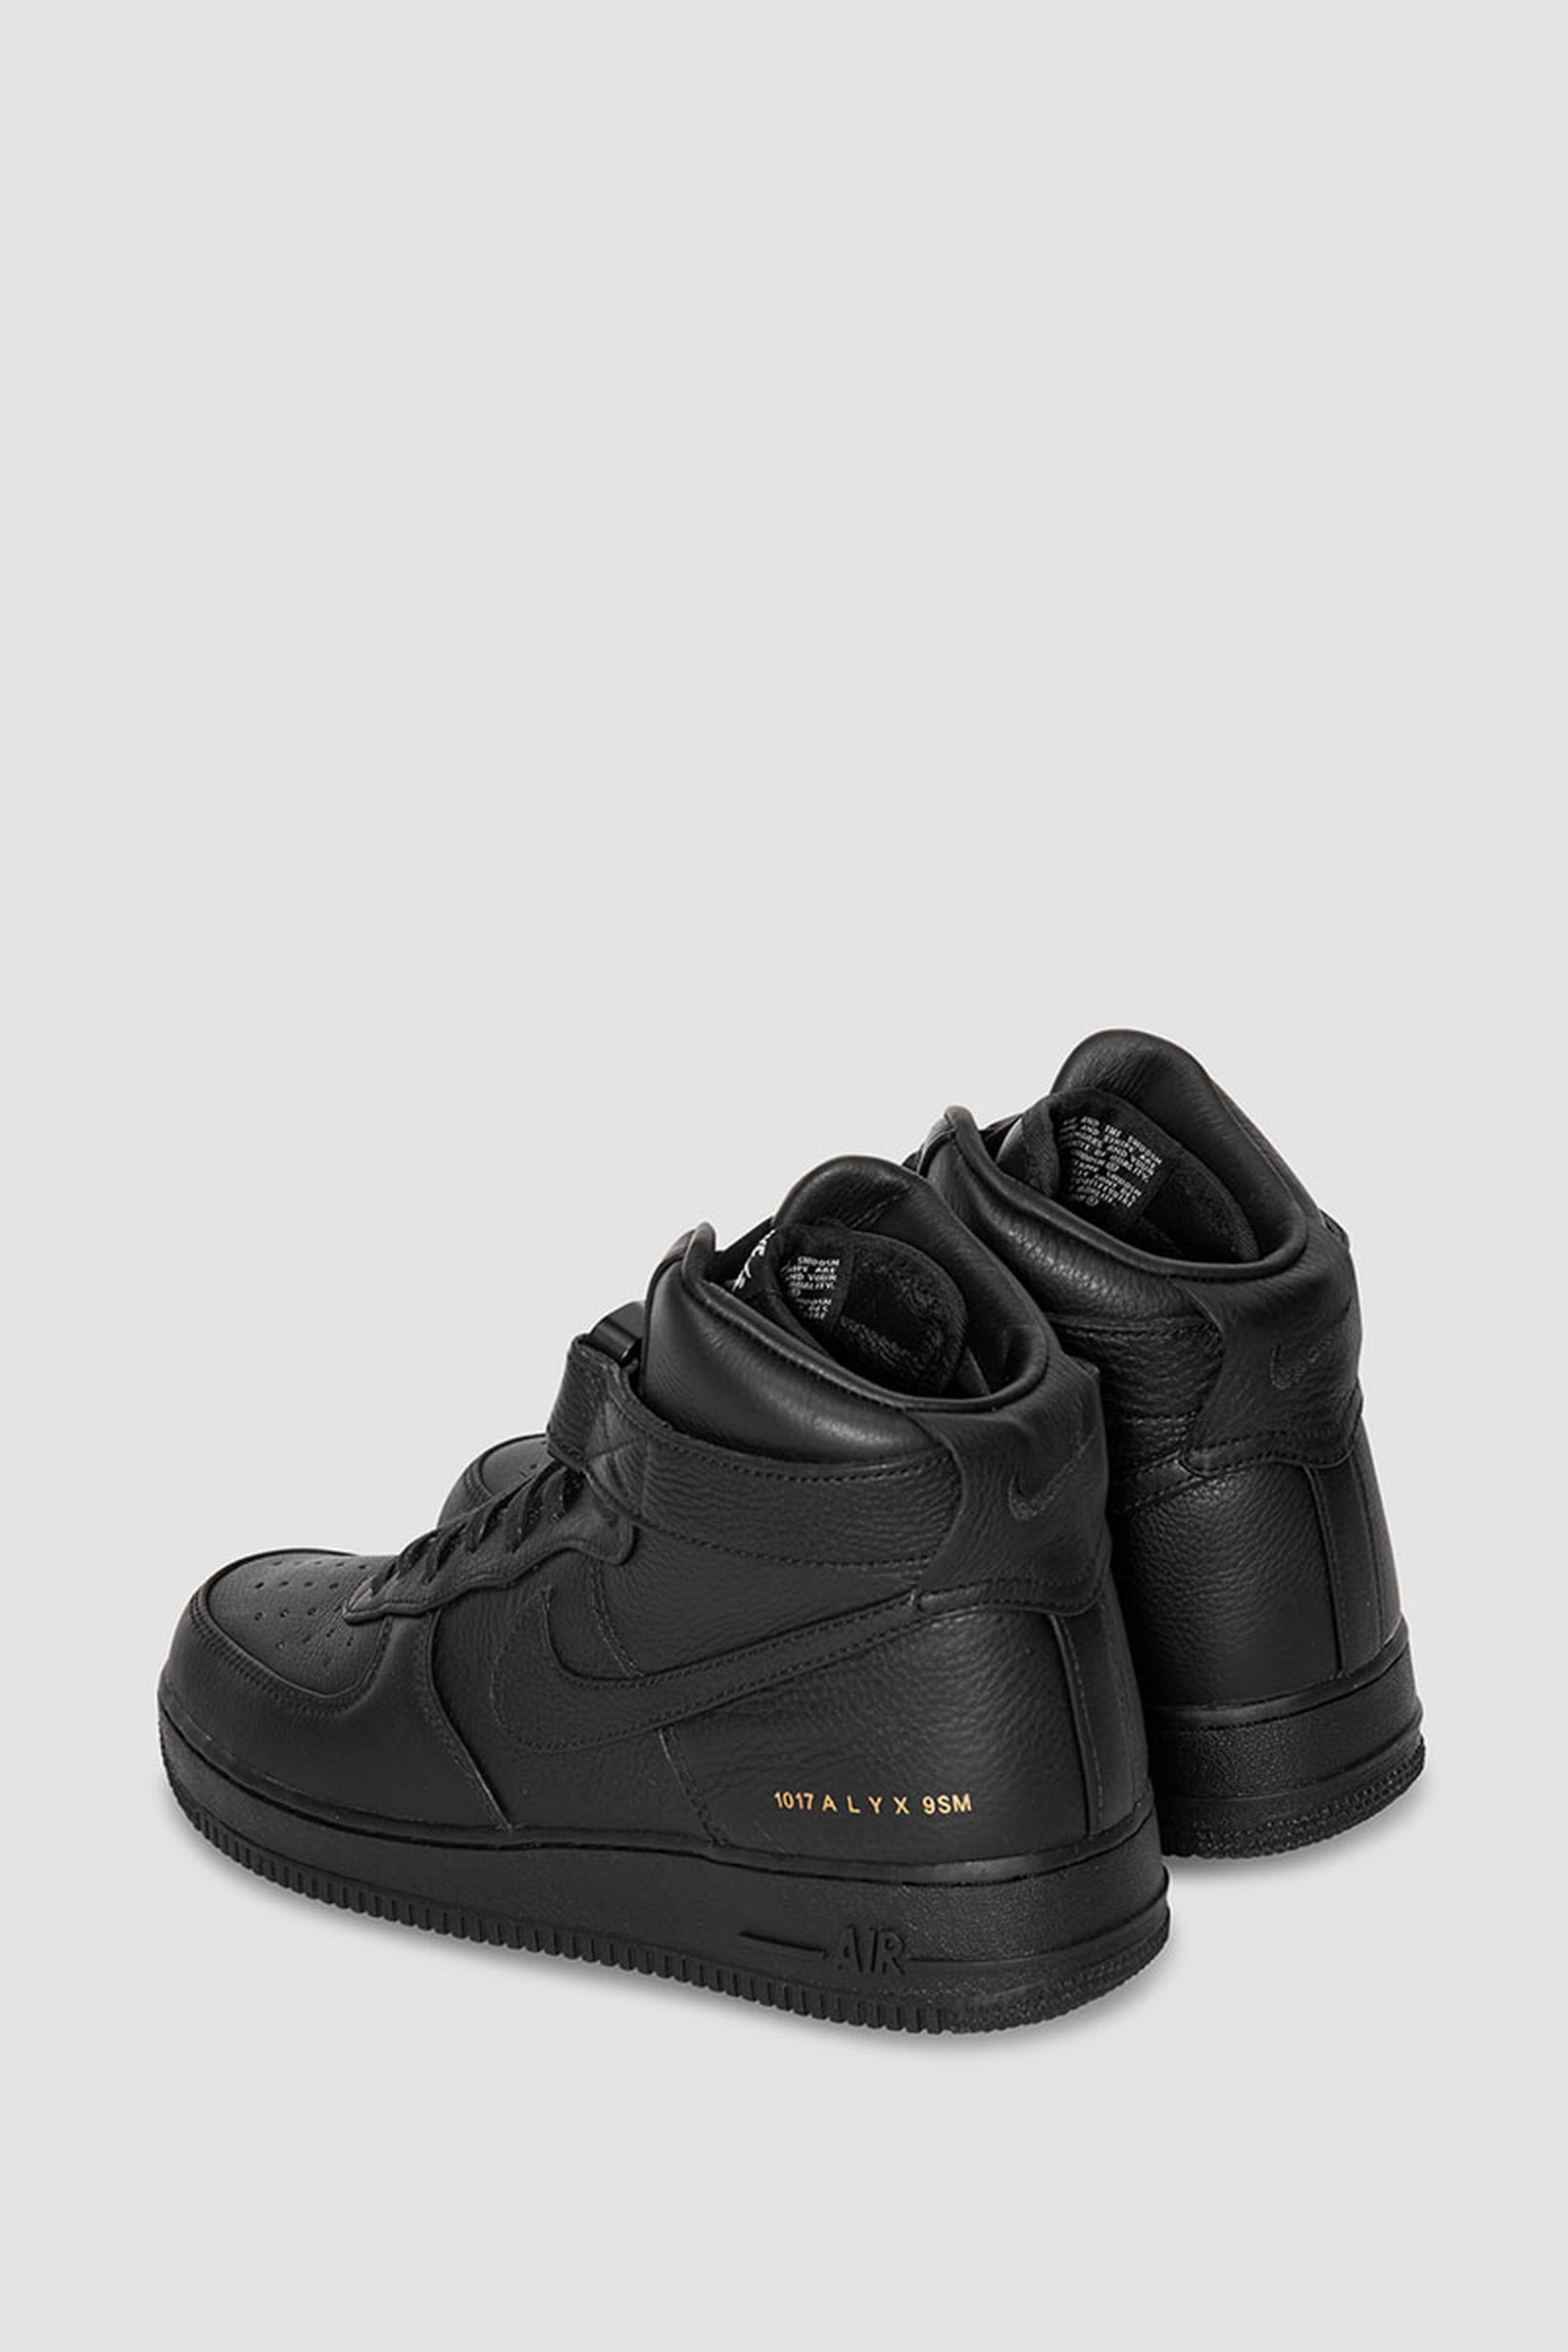 alyx-nike-air-force-1-high-release-date-price-12